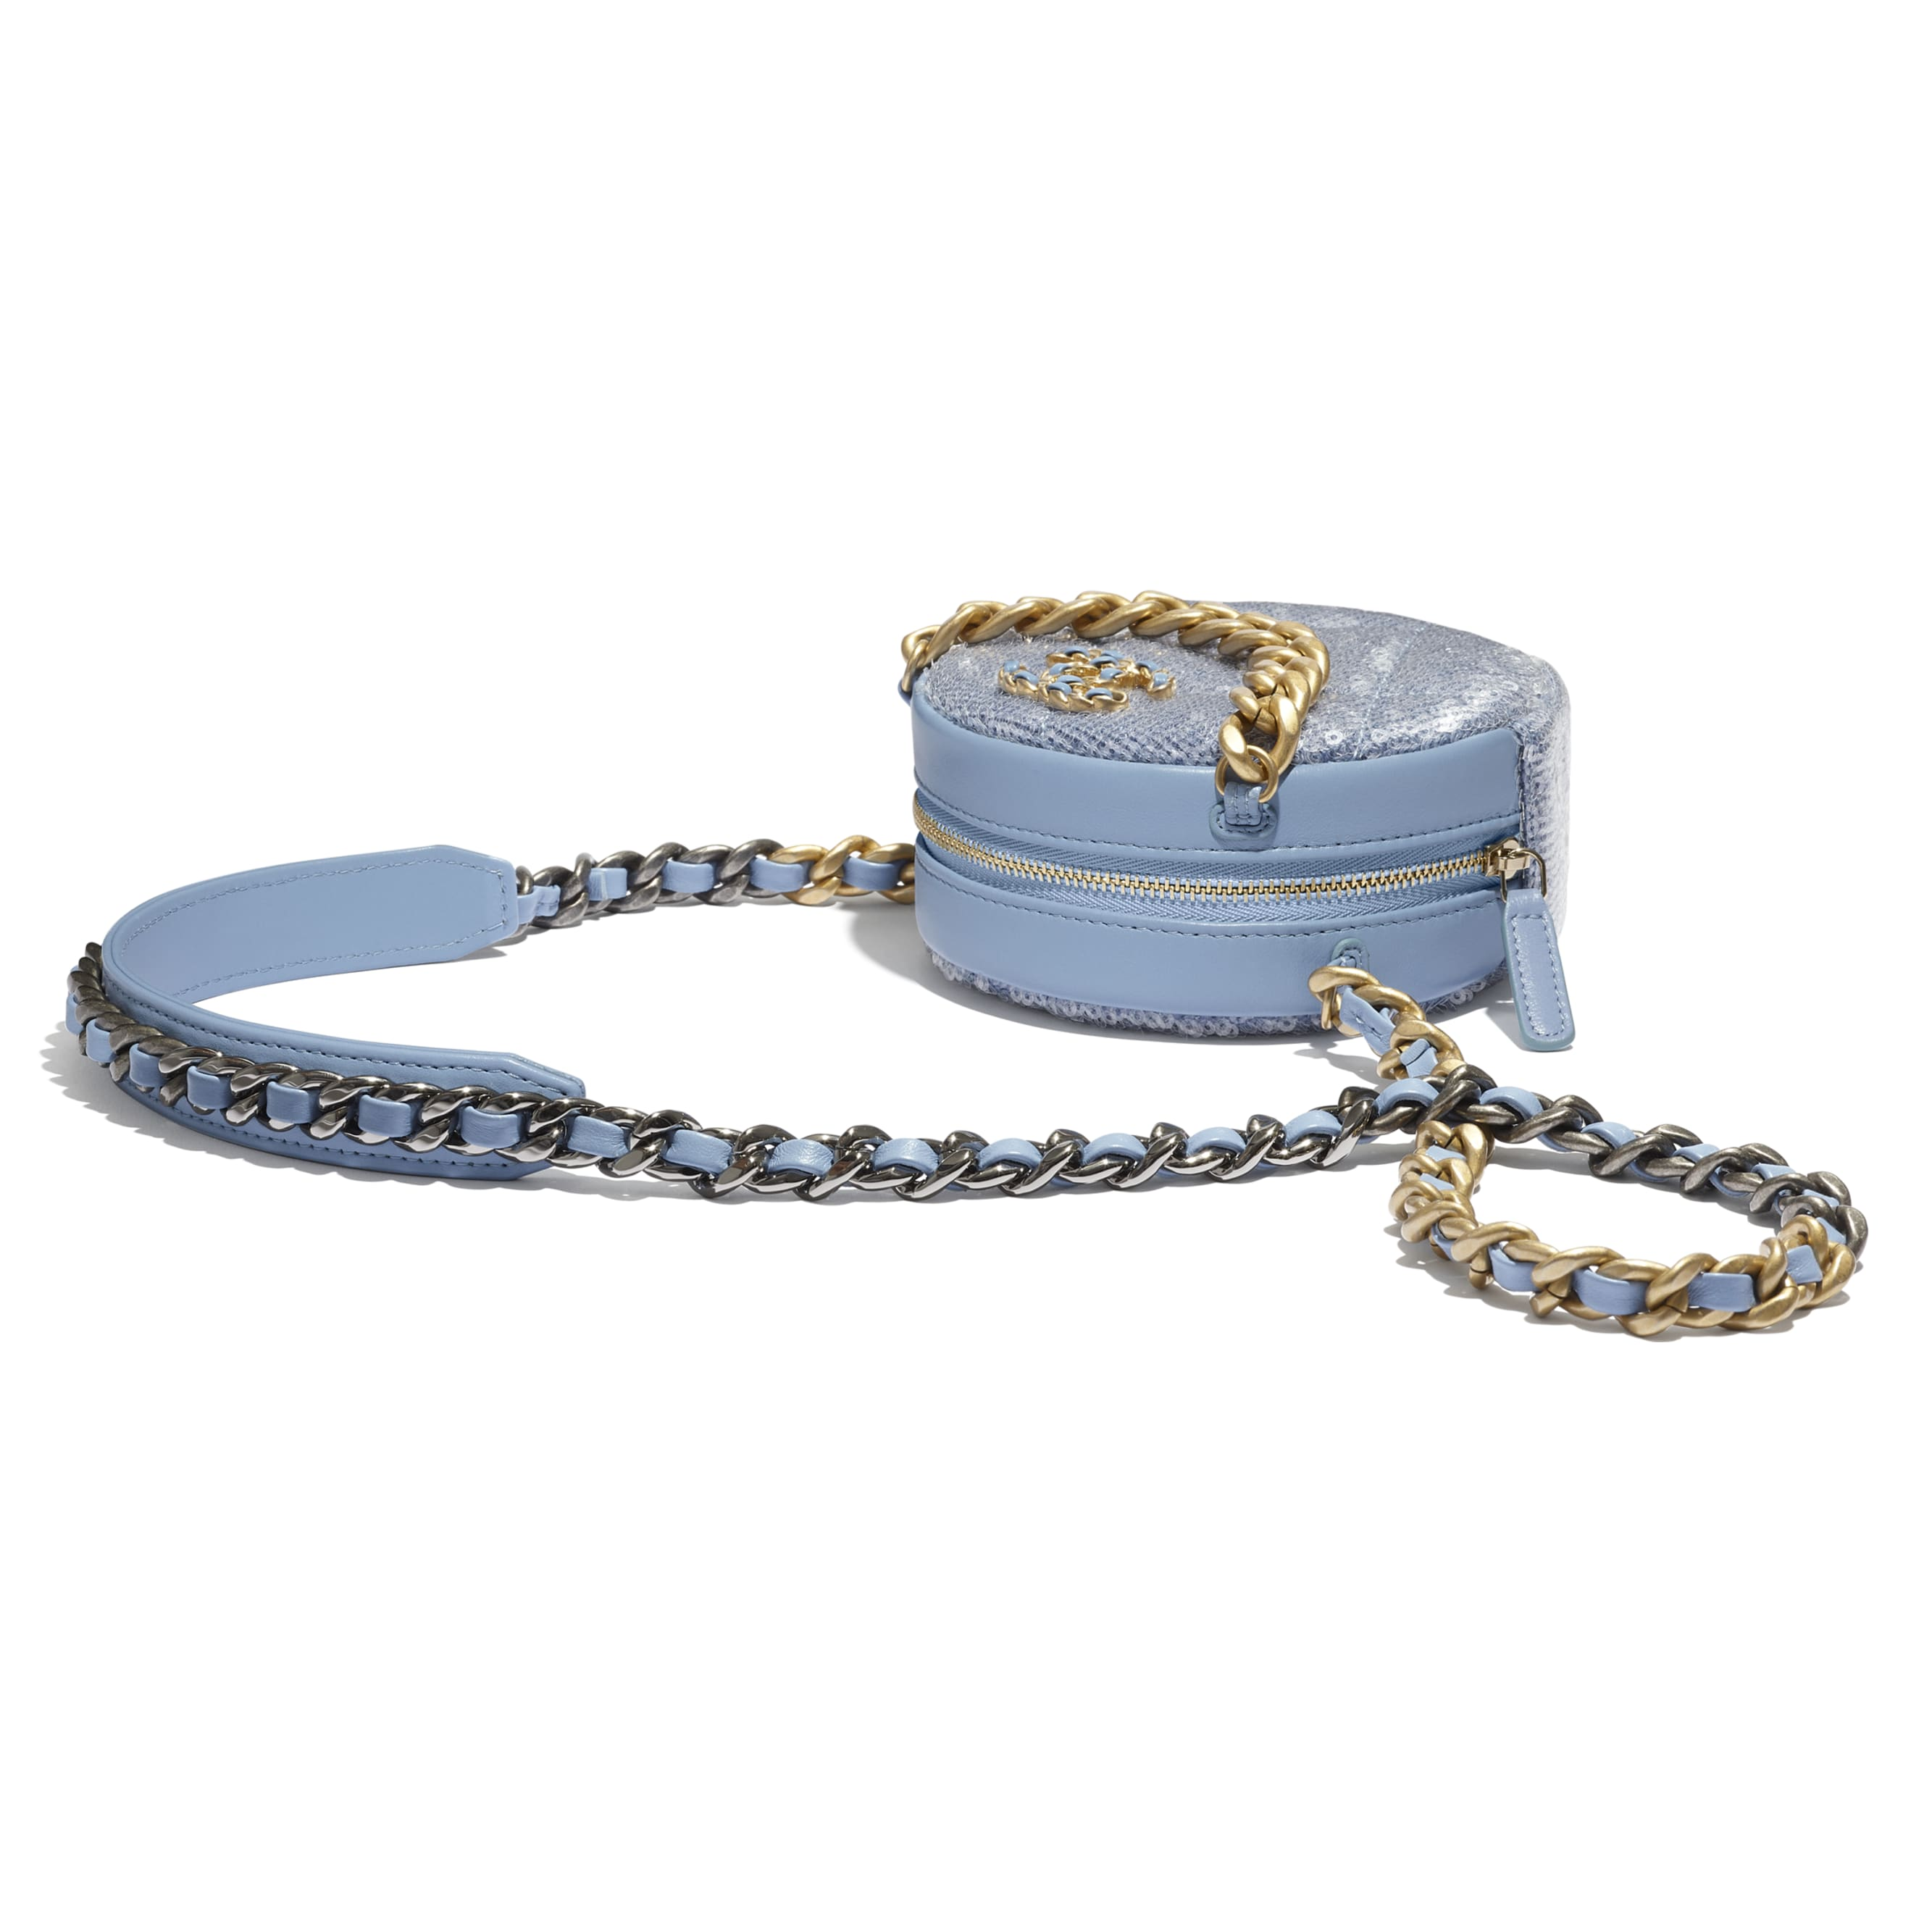 CHANEL 19 Clutch with Chain - Sky Blue - Sequins, calfksin, silver-tone & gold-tone metal - CHANEL - Extra view - see standard sized version